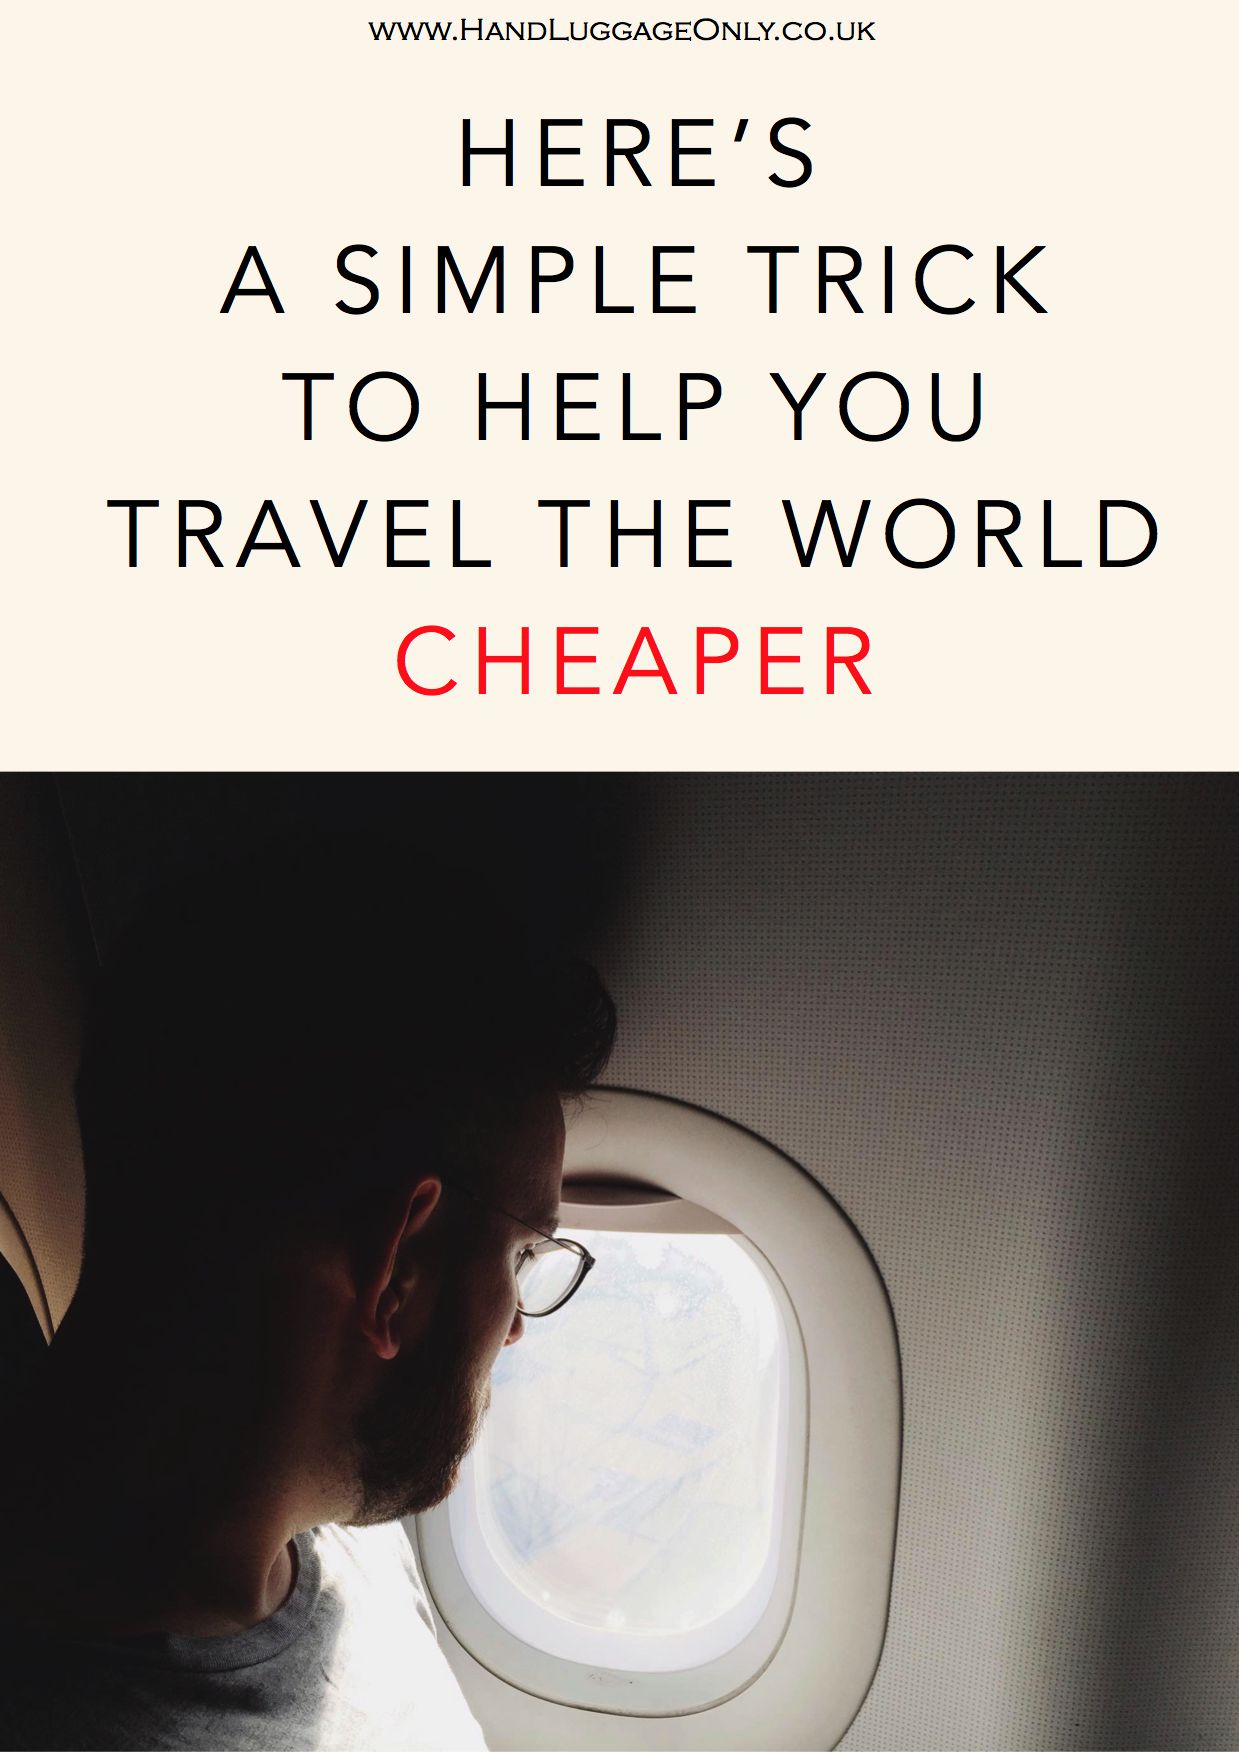 Here's A Very Simple Idea To Help You Travel The World More Affordably!